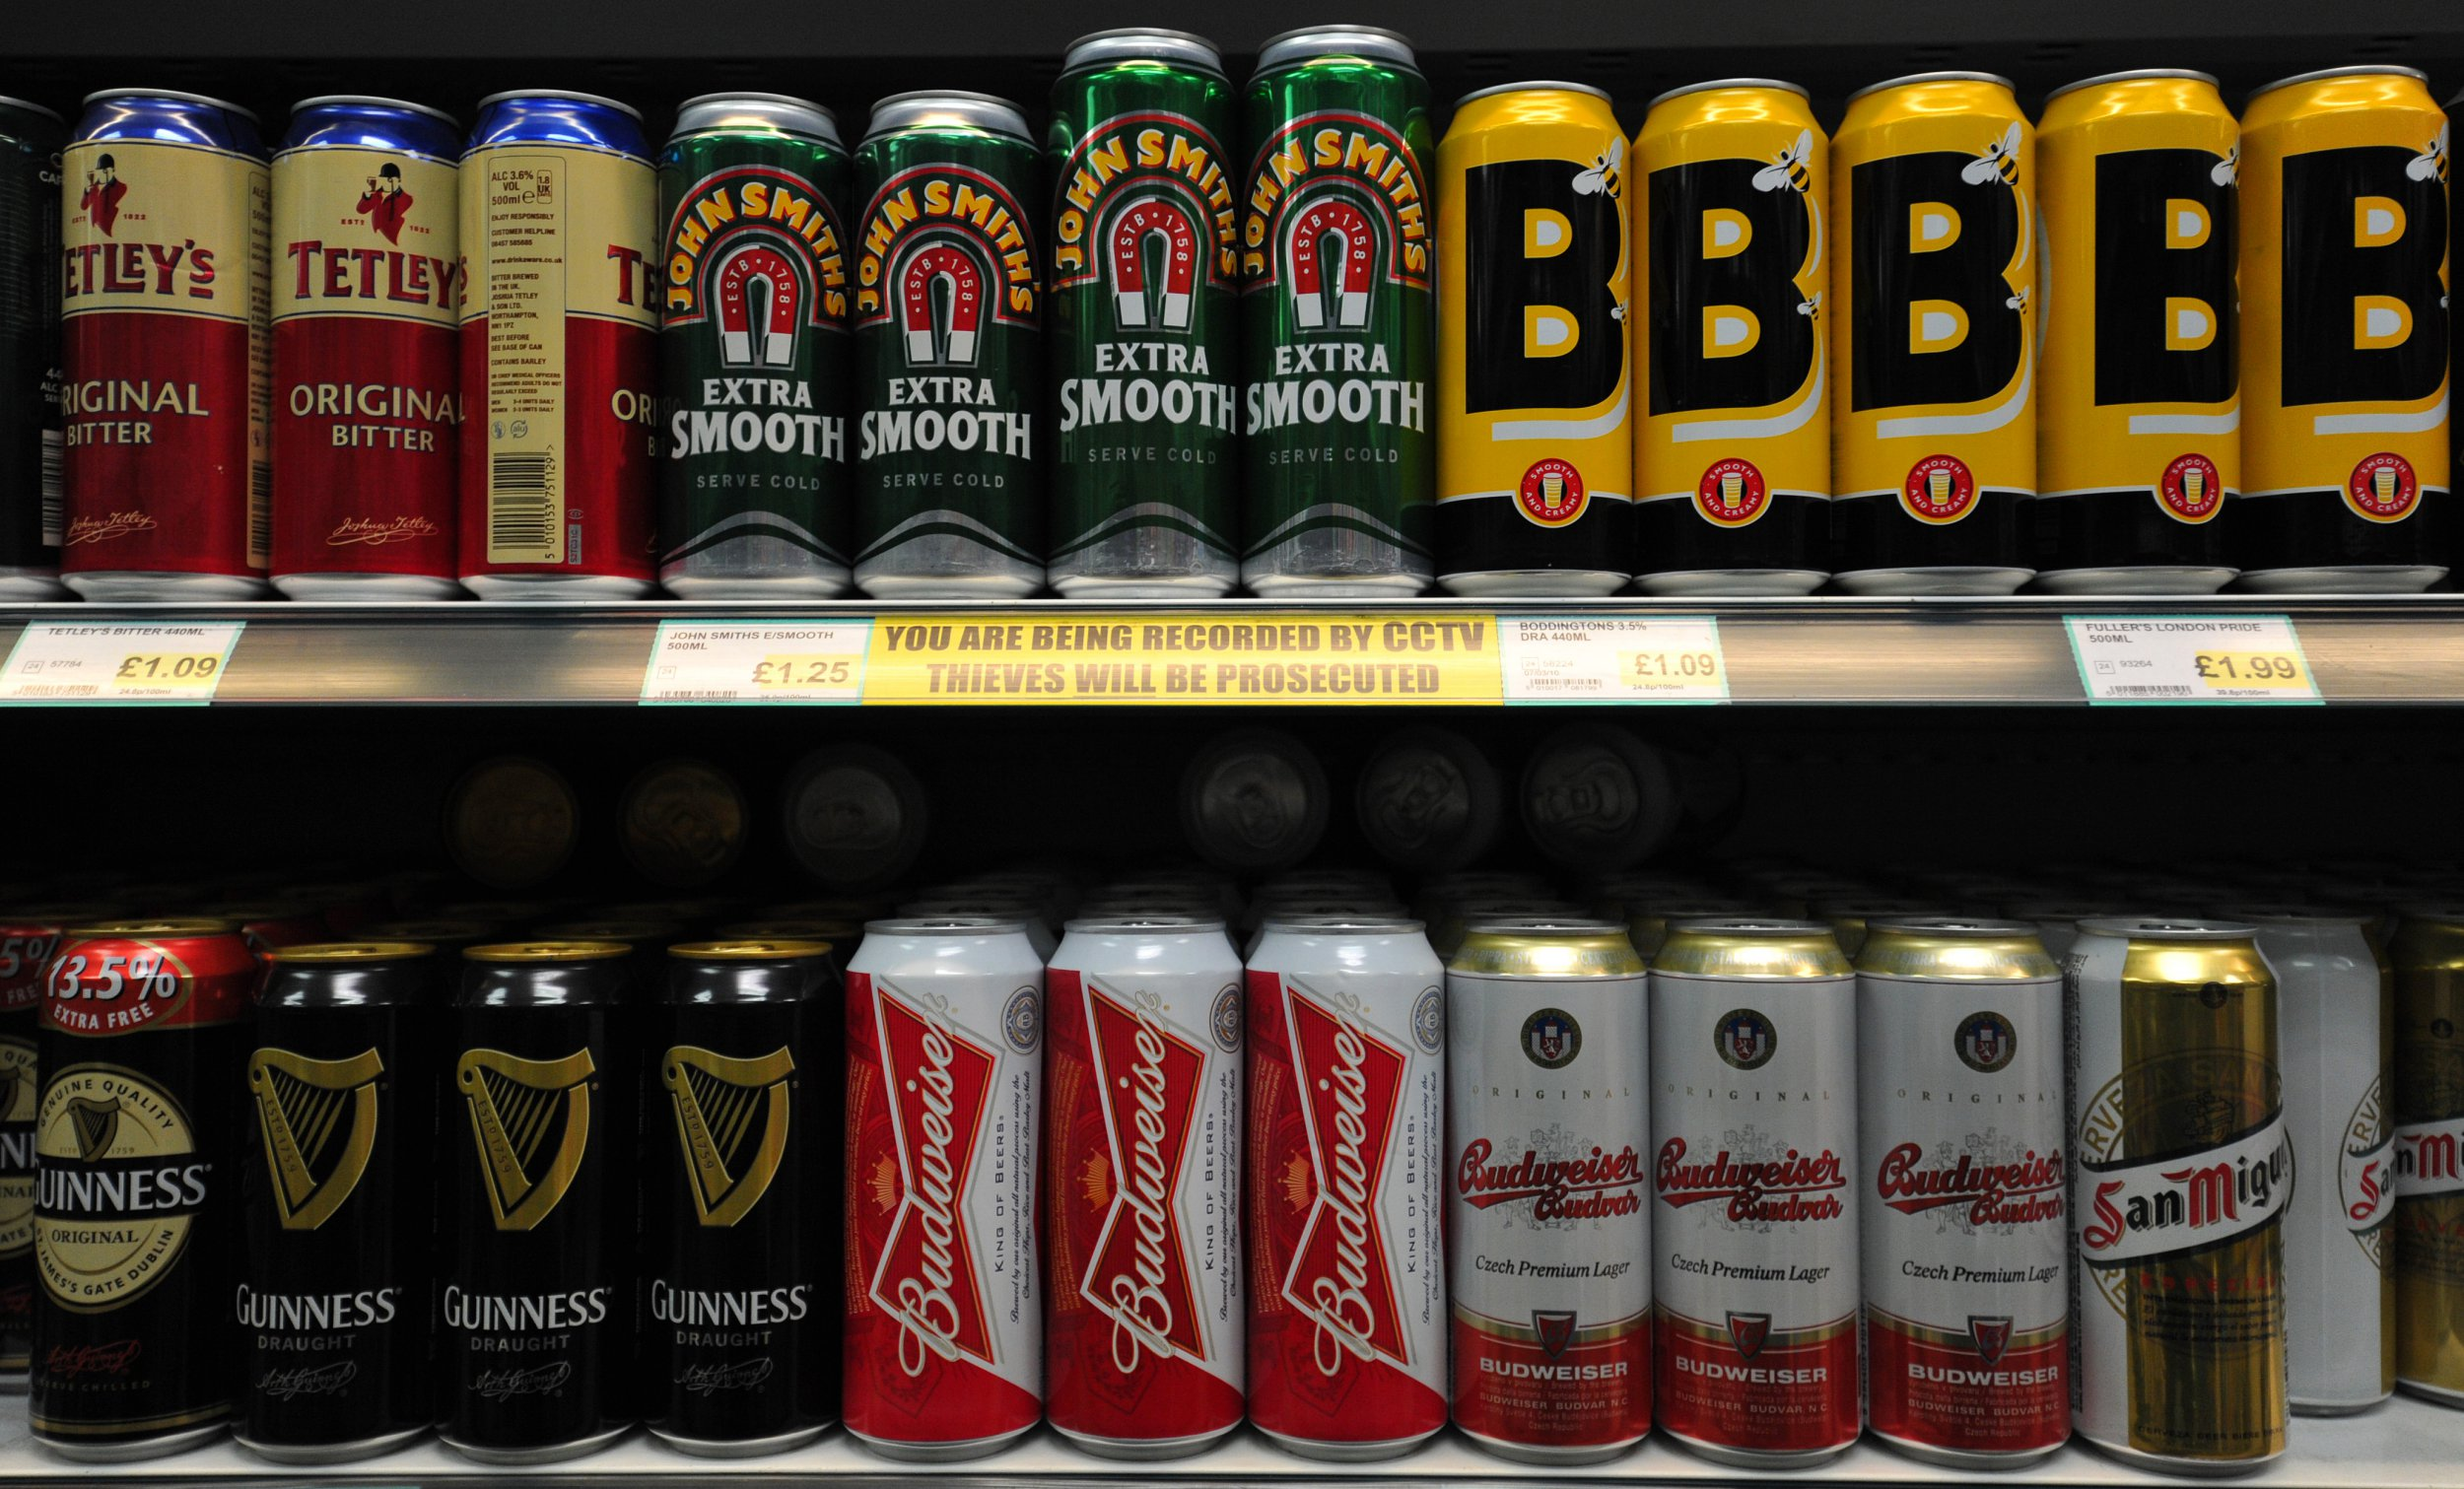 Cans of beer line a shelf in a store in central London on November 28, 2012. The British government was to announce plans on November 28 for a minimum alcohol price of 0.45 GBP (0.72 USD, 0.56 euros) in England and Wales in an attempt to restrain an infamous binge-drinking culture. AFP PHOTO / CARL COURT (Photo credit should read CARL COURT/AFP/Getty Images)